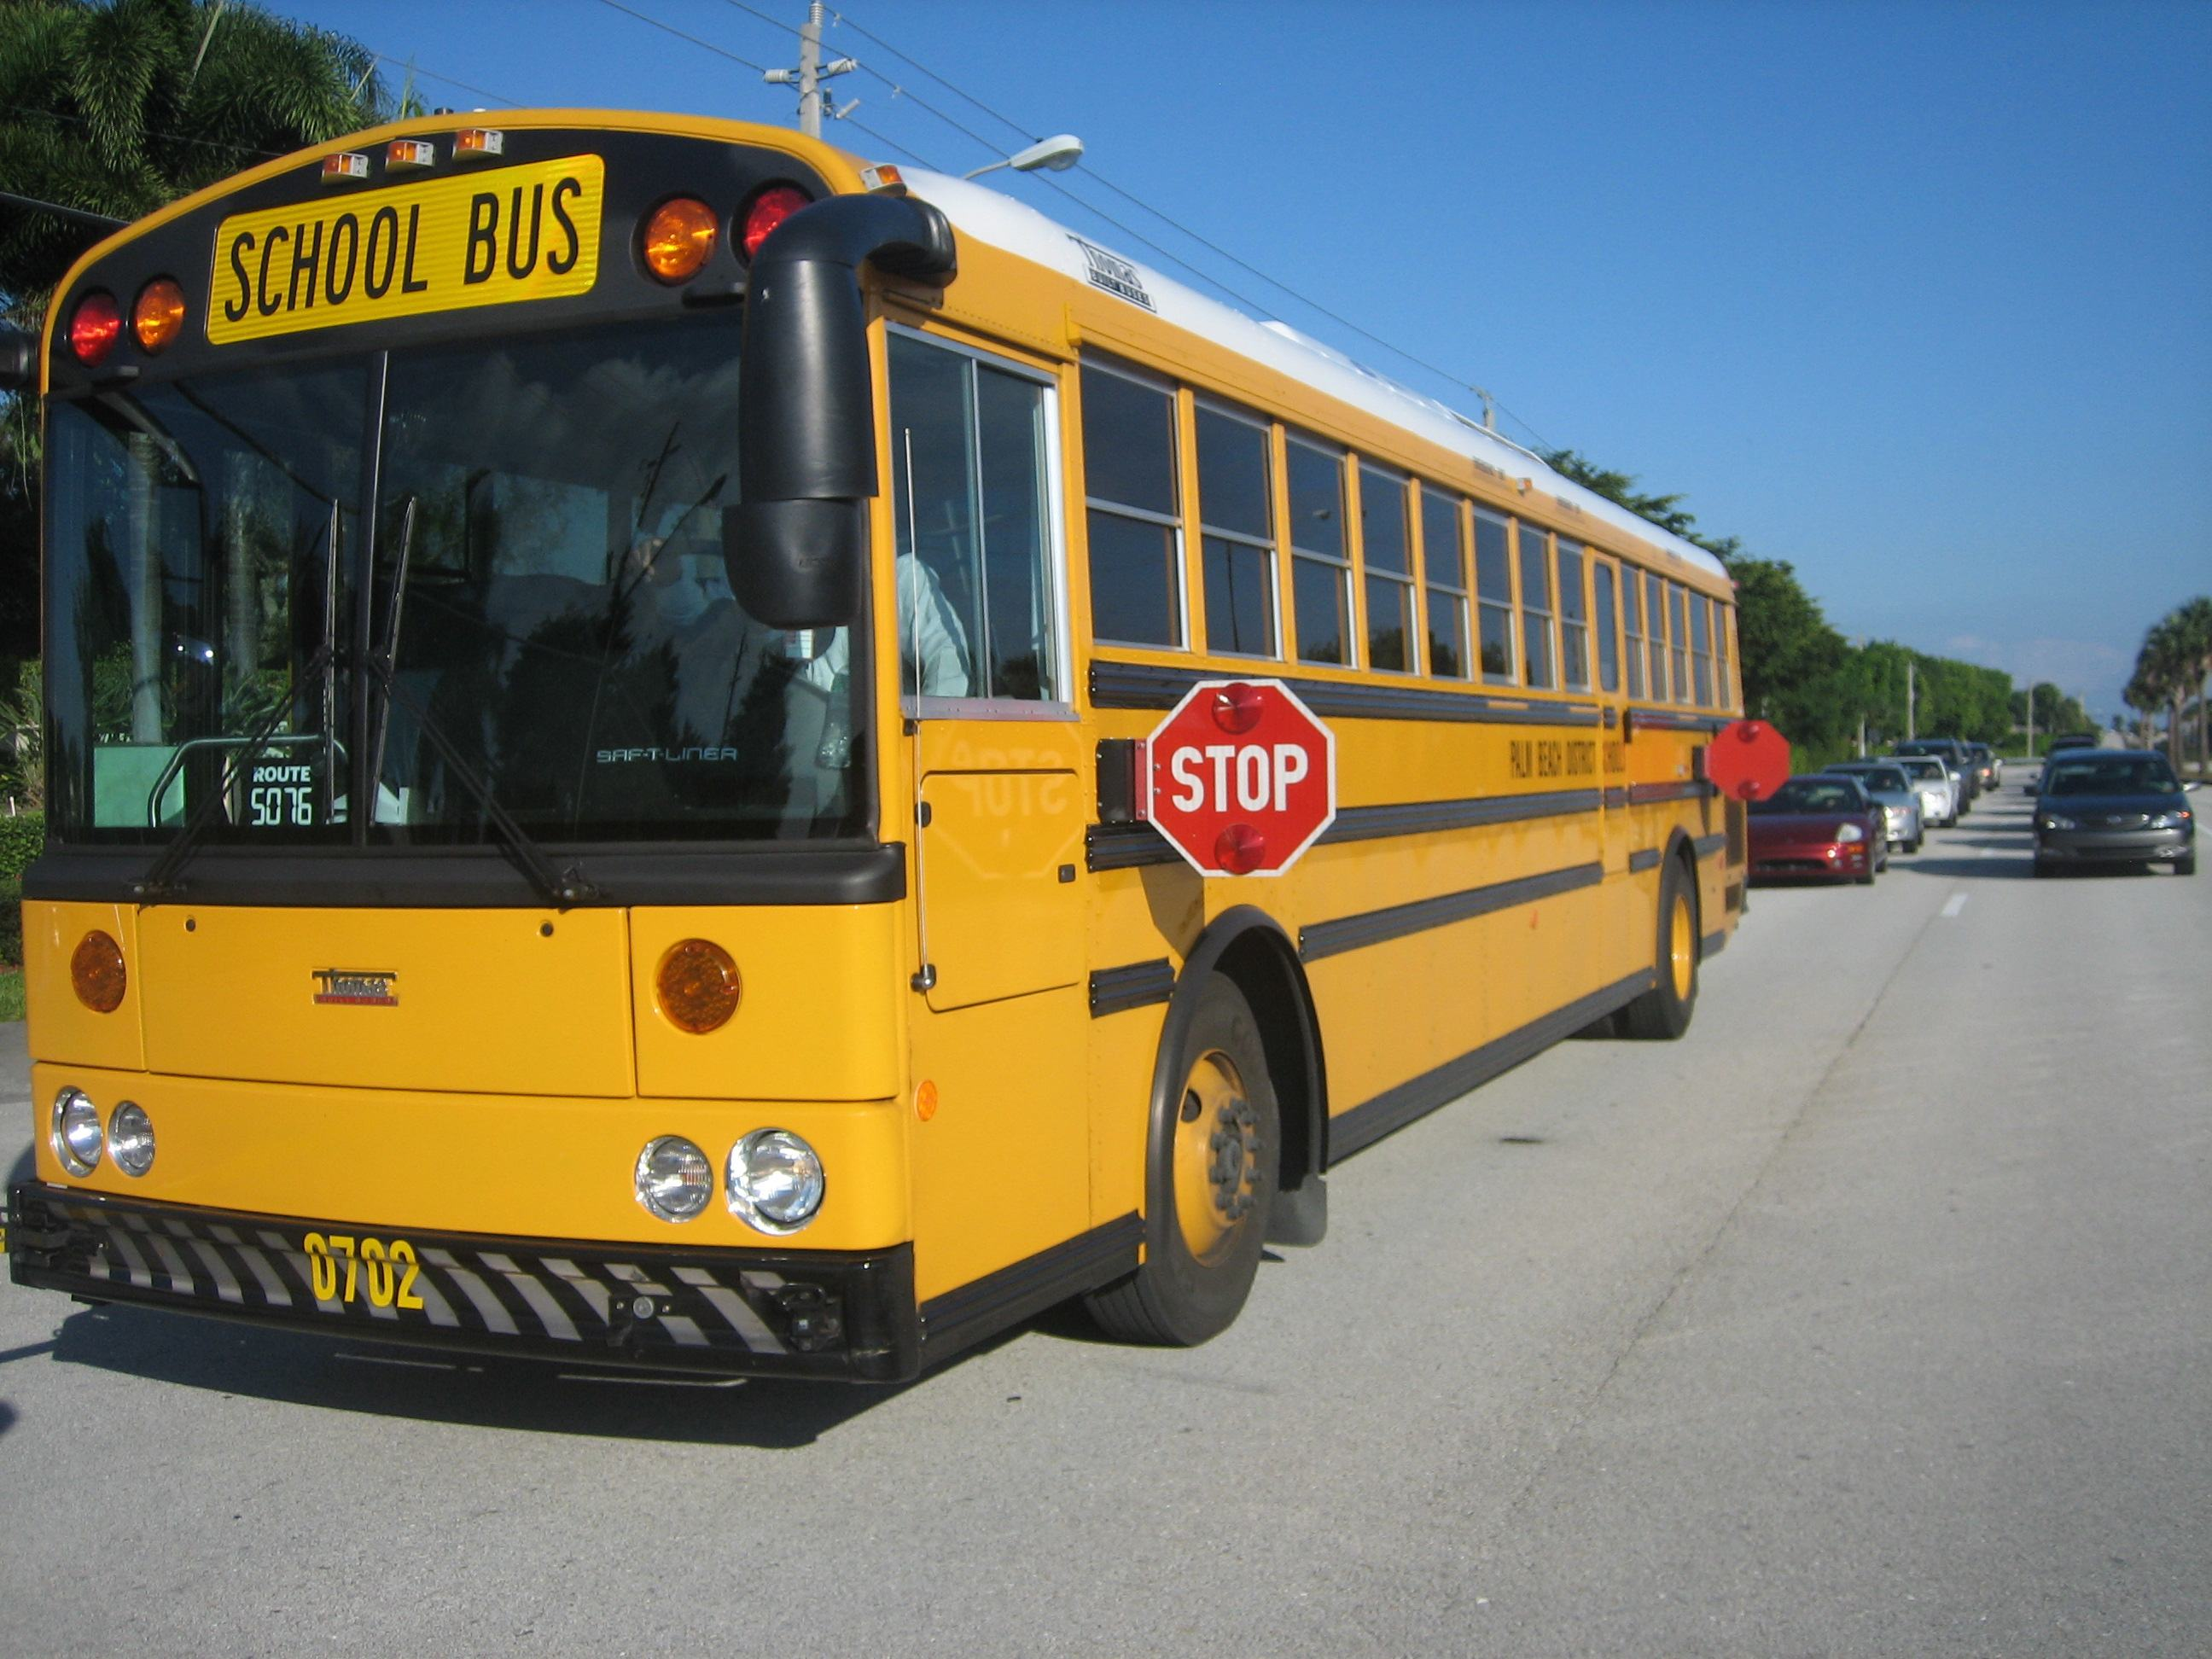 WHAT HAPPENS IF I ILLEGALLY PASS A SCHOOL BUS IN FLORIDA?